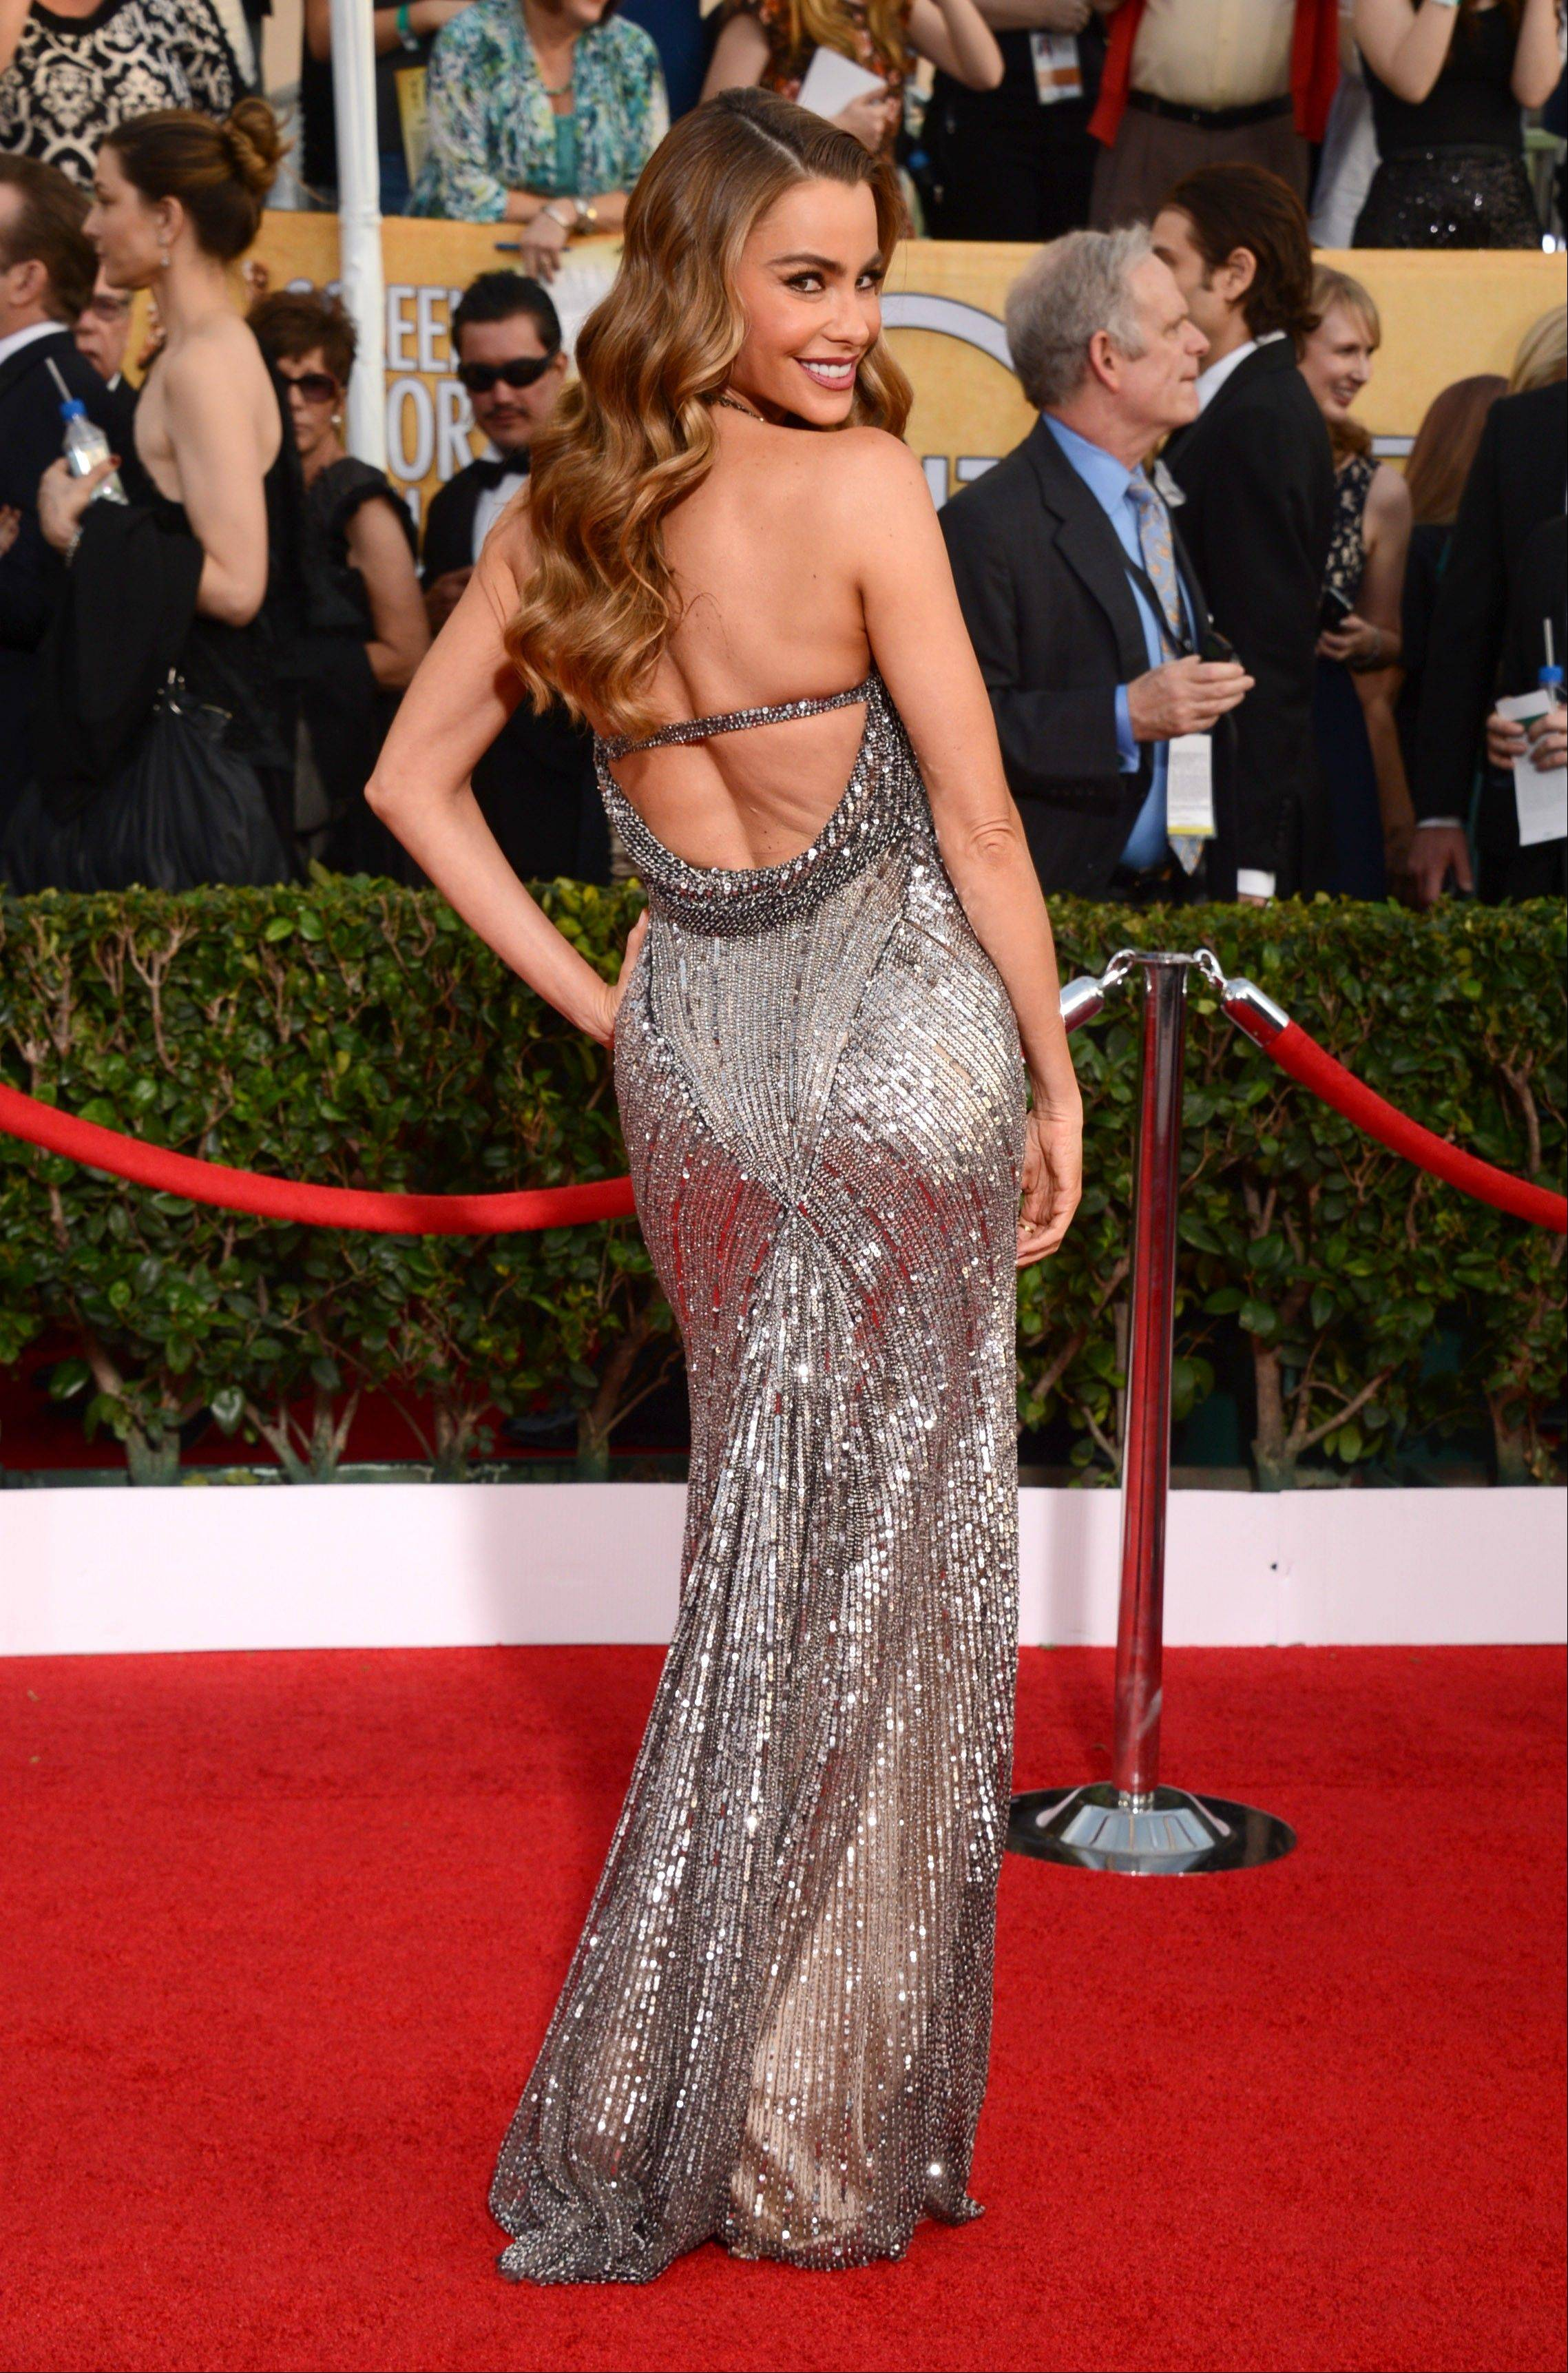 Sofia Vergara arrives at the 20th annual Screen Actors Guild Awards.